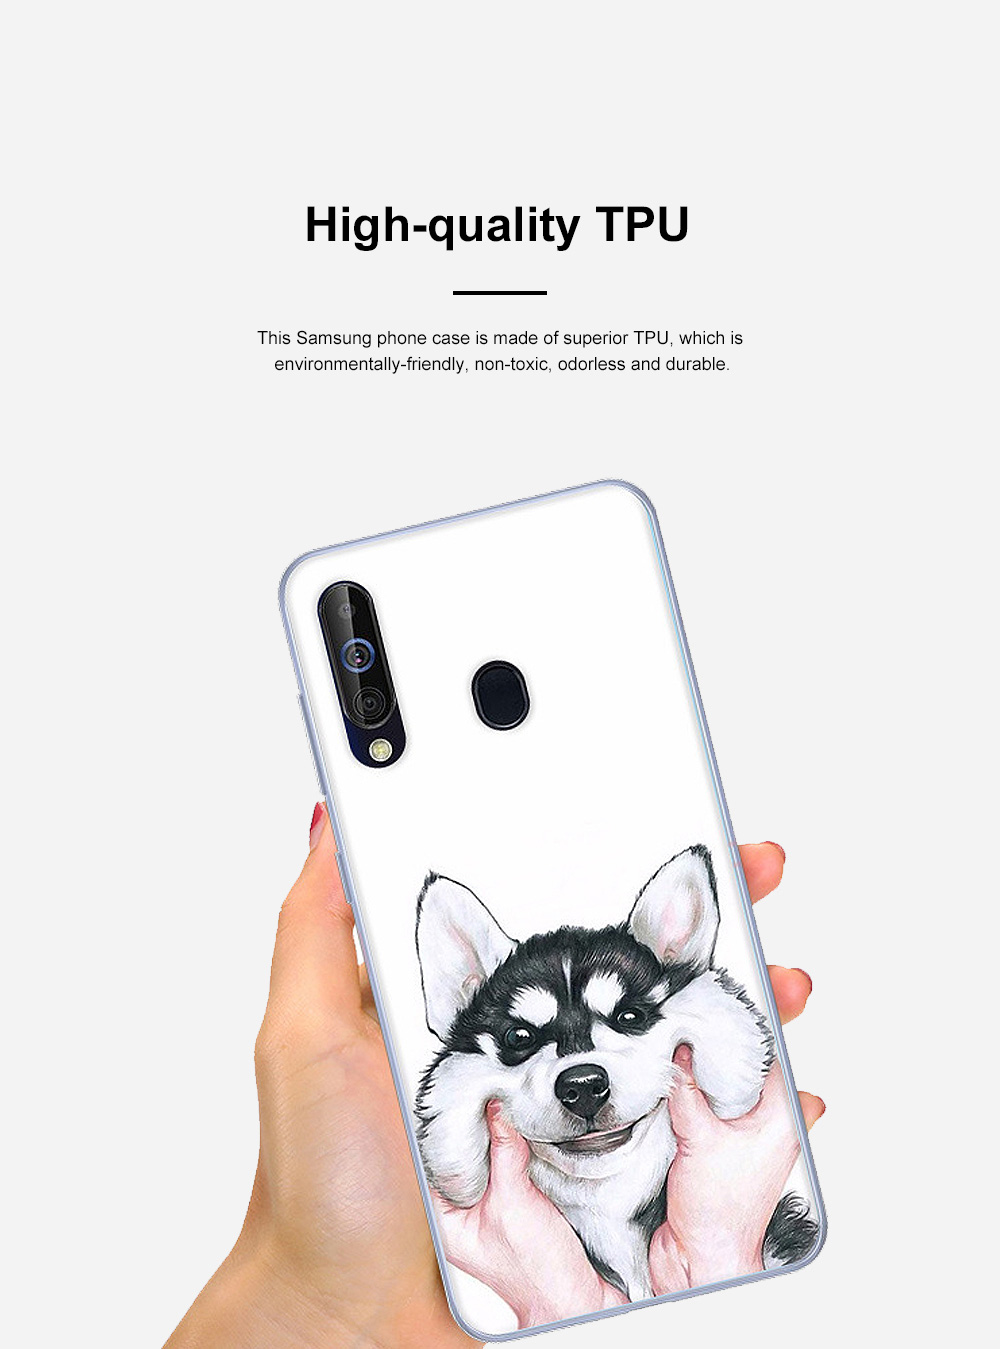 Cute Stylish Cartoon Painting Samsung Galaxy A60 Phone Case, Soft Flexible Breaking-proof TPU Samsung Phone Protective Cover 5